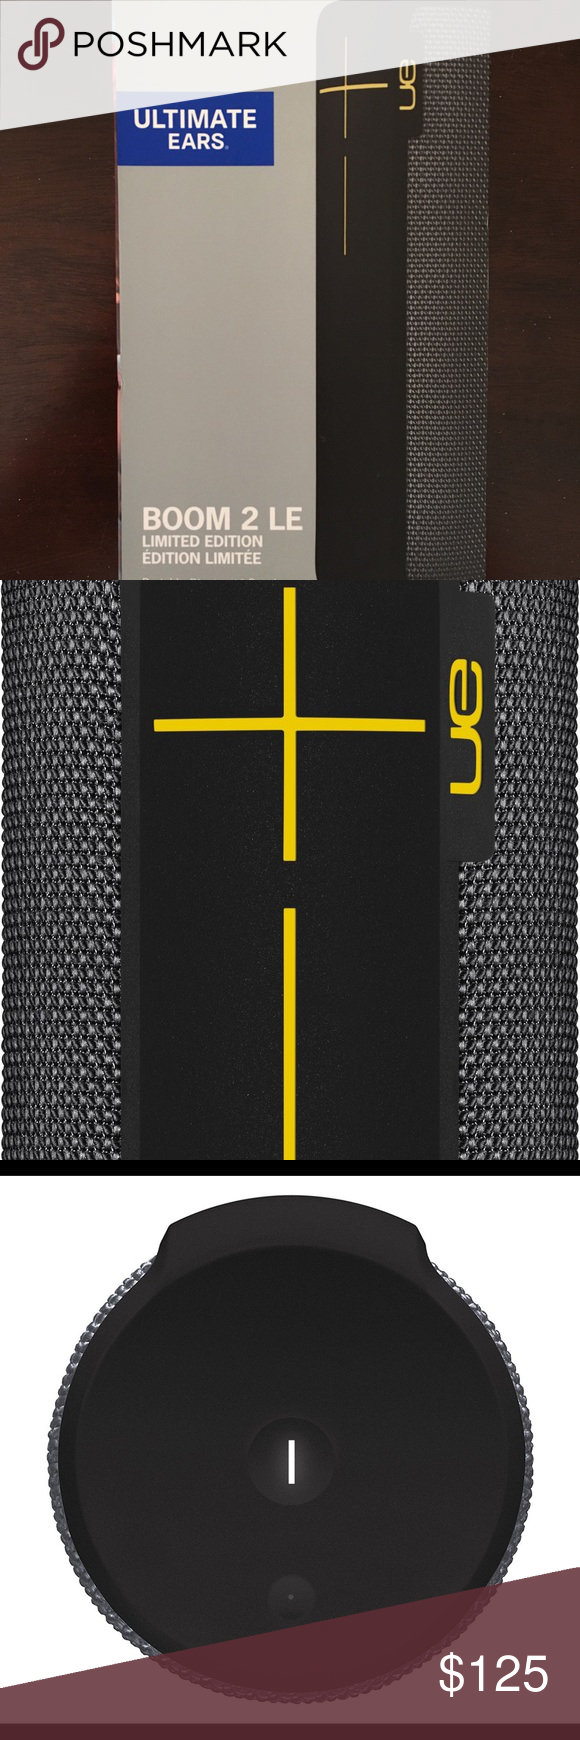 Ue Mega Boom Bluetooth Speaker Brand New Brand New Never Been Used Special Edition Panther Ue Megaboom Other Brand New Things To Sell Ue Megaboom